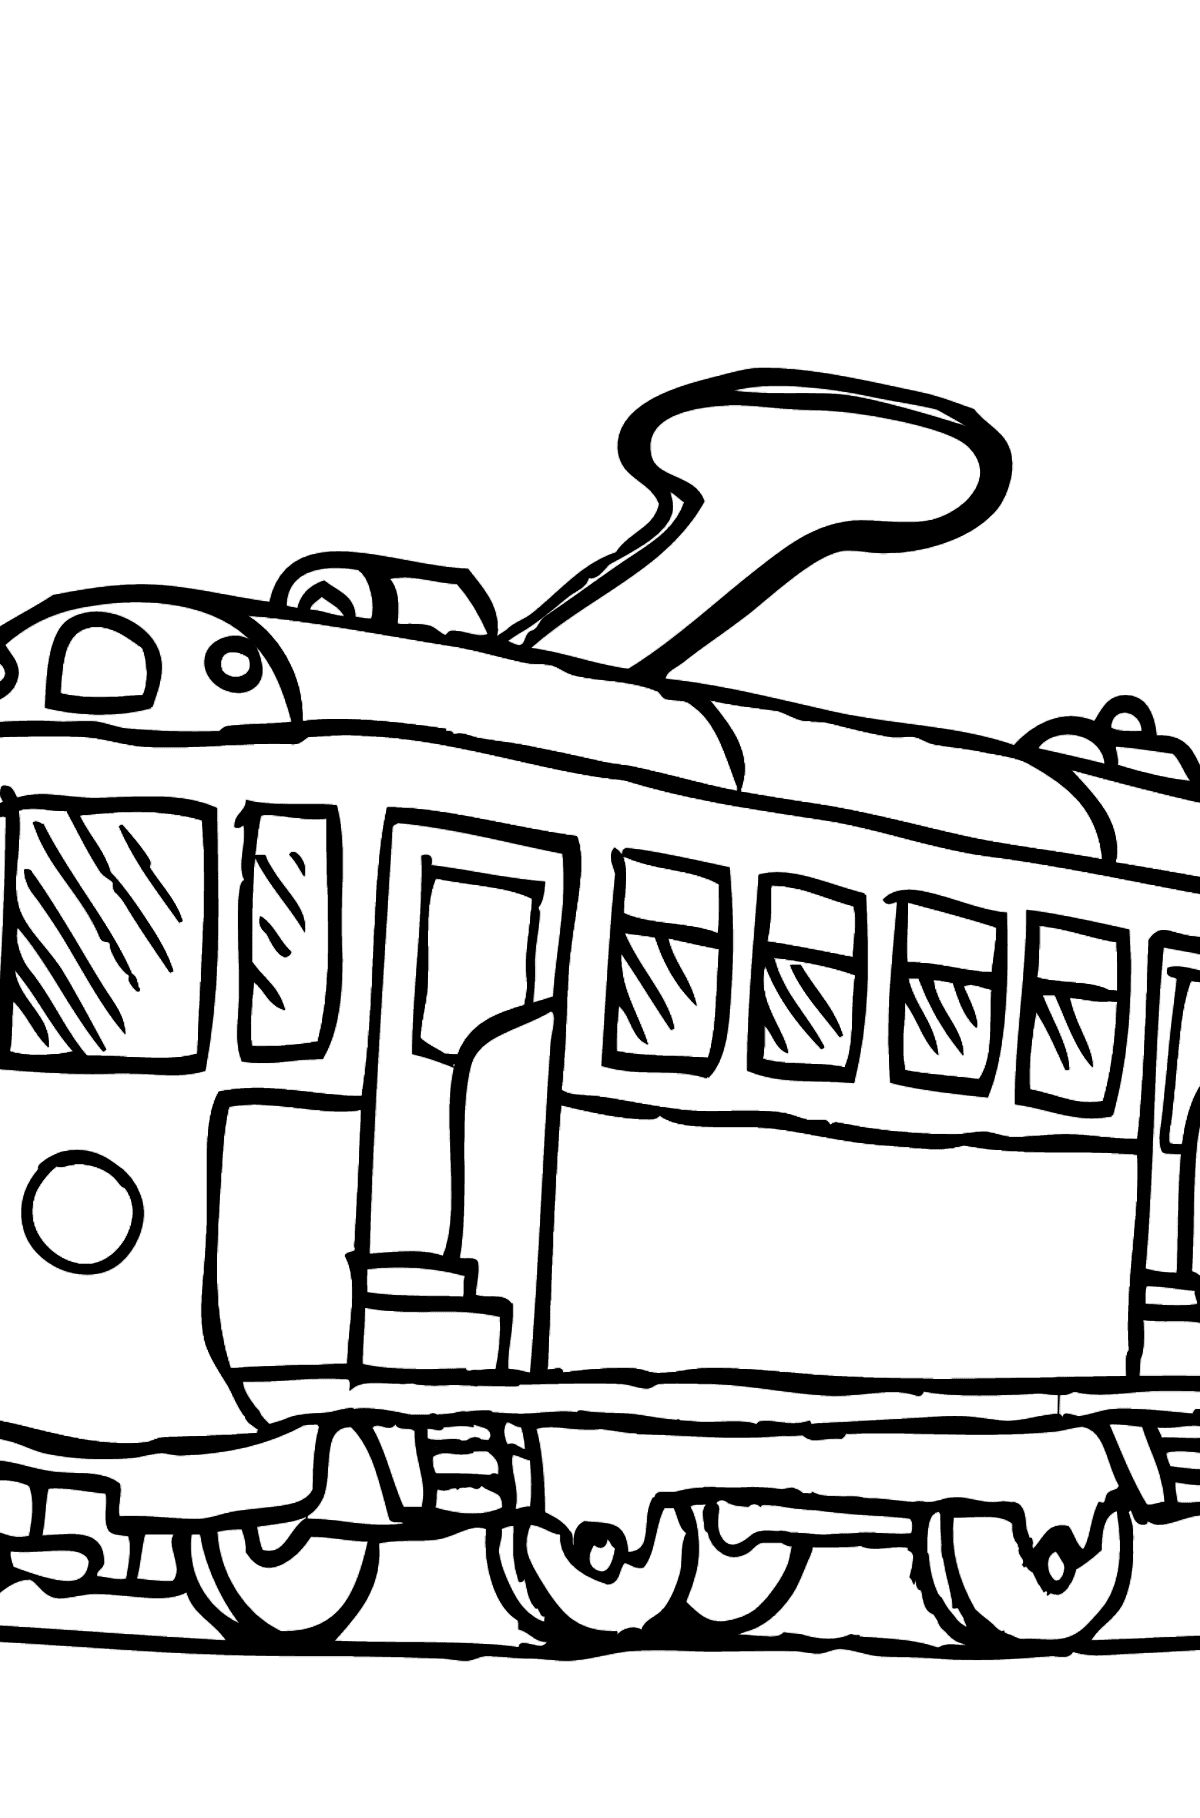 Simple Coloring Page - A Tram is Bored - Coloring Pages for Kids